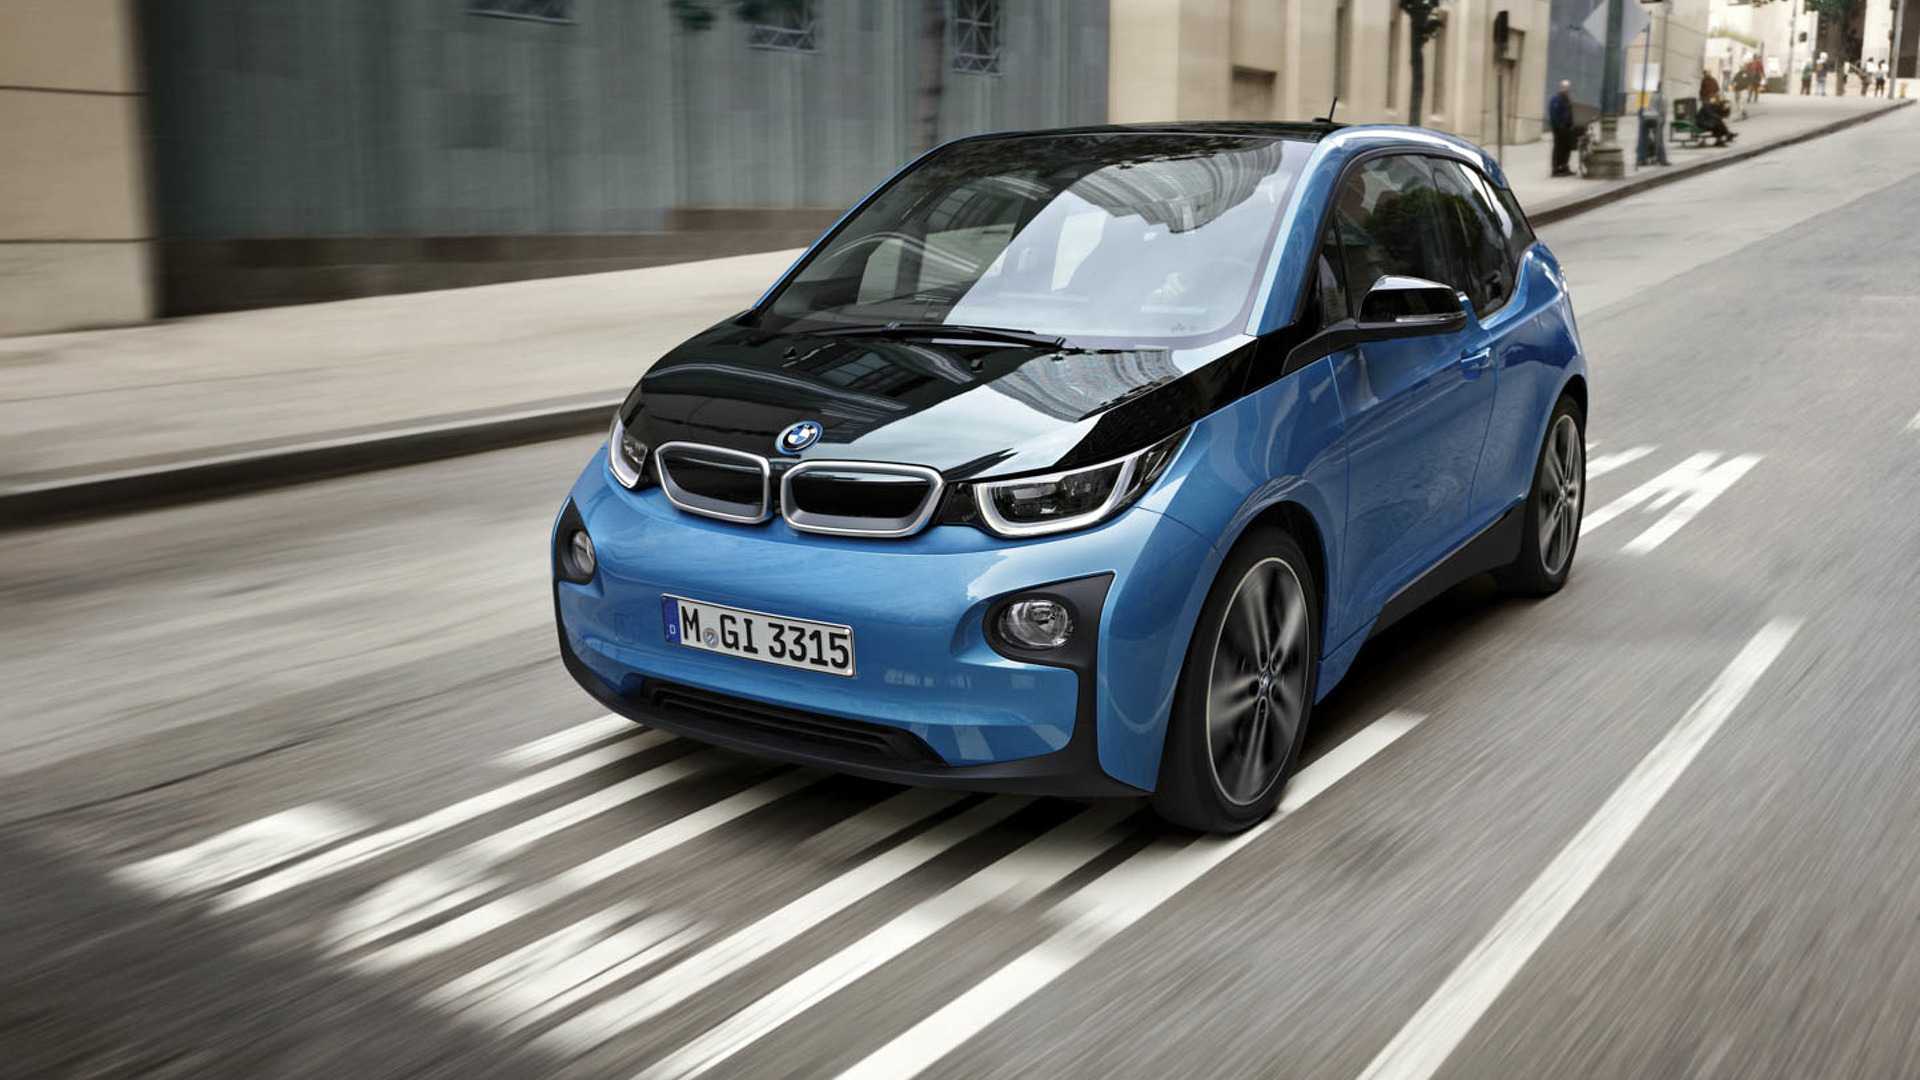 BMW Plug-In Electric Car Sales In U.S. Drop Below 1,000 In April